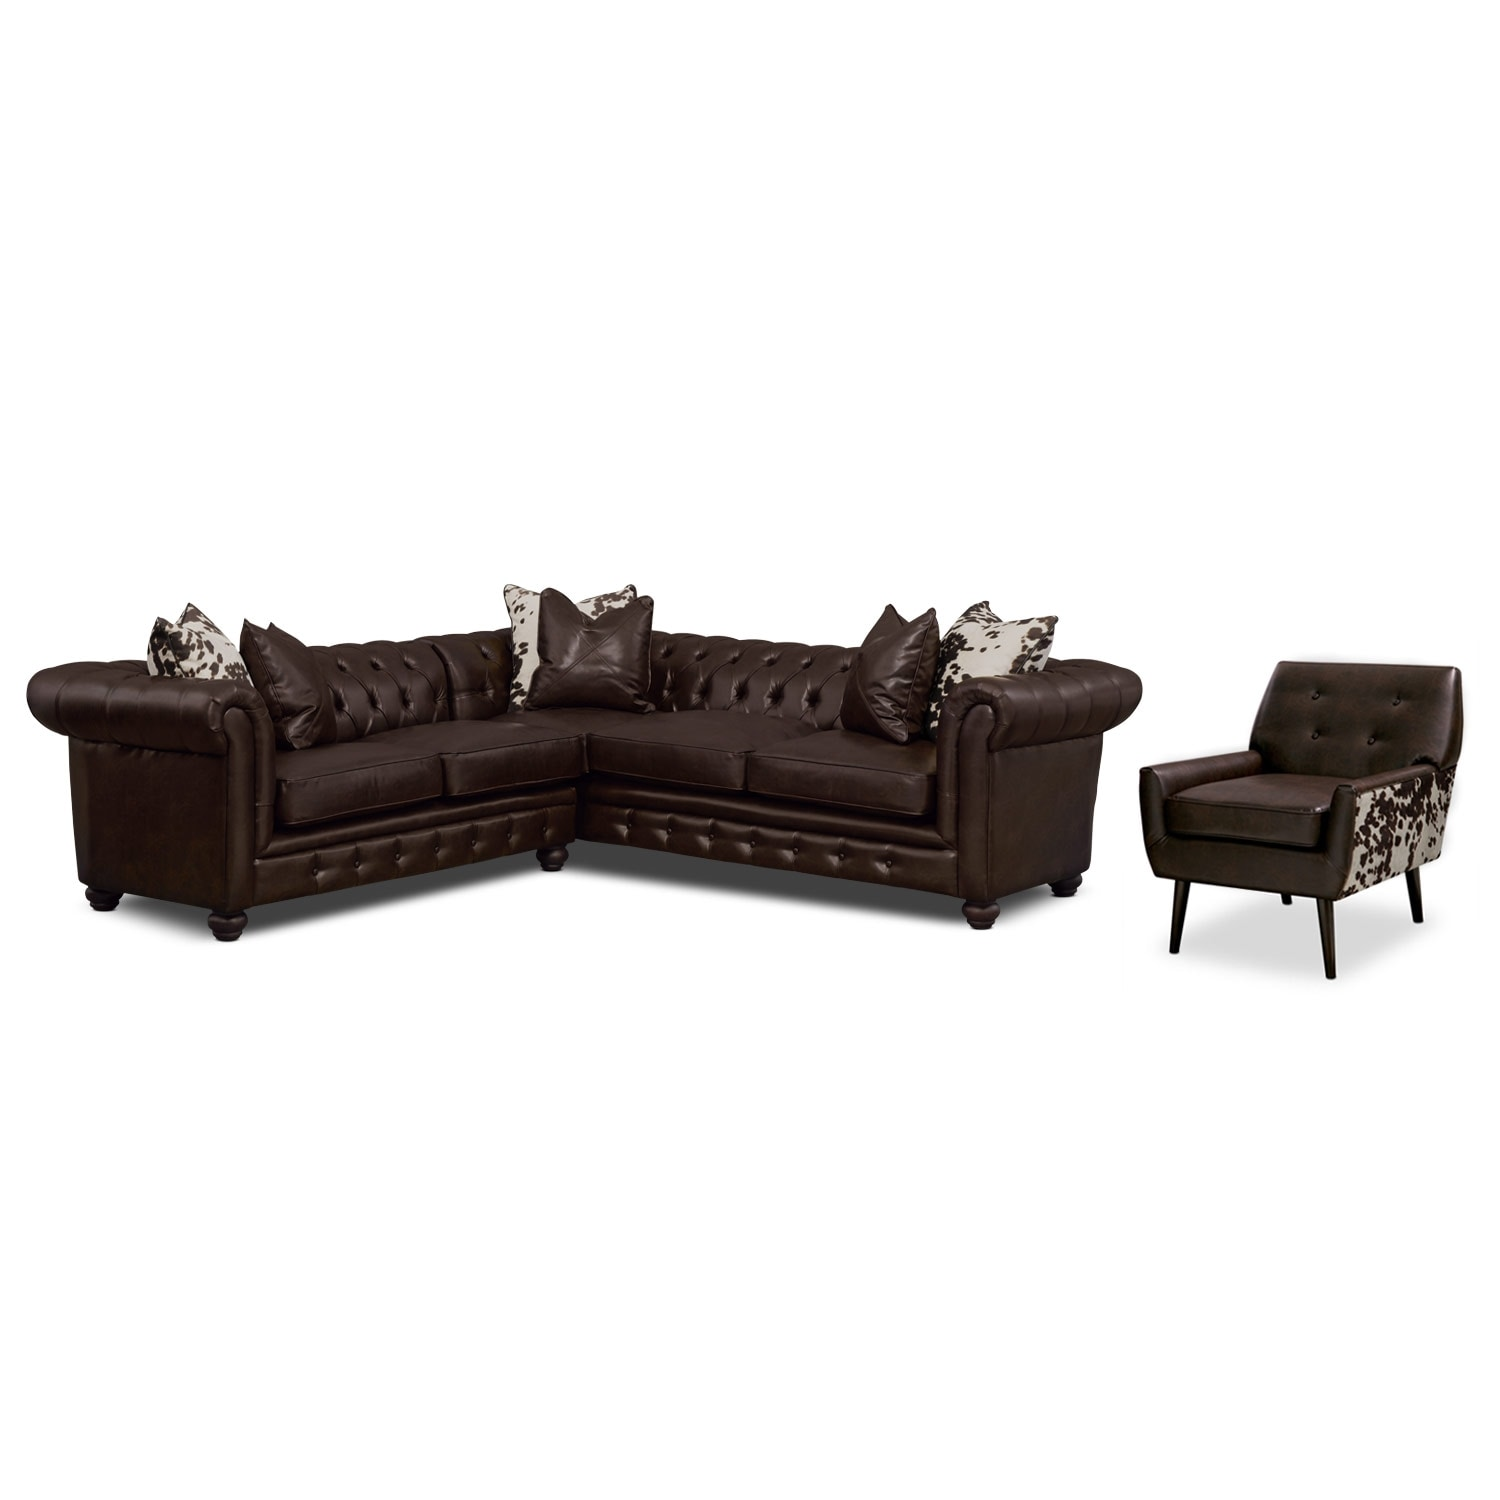 Living Room Furniture - Madeline Chocolate 2 Pc. Sectional and Accent Chair